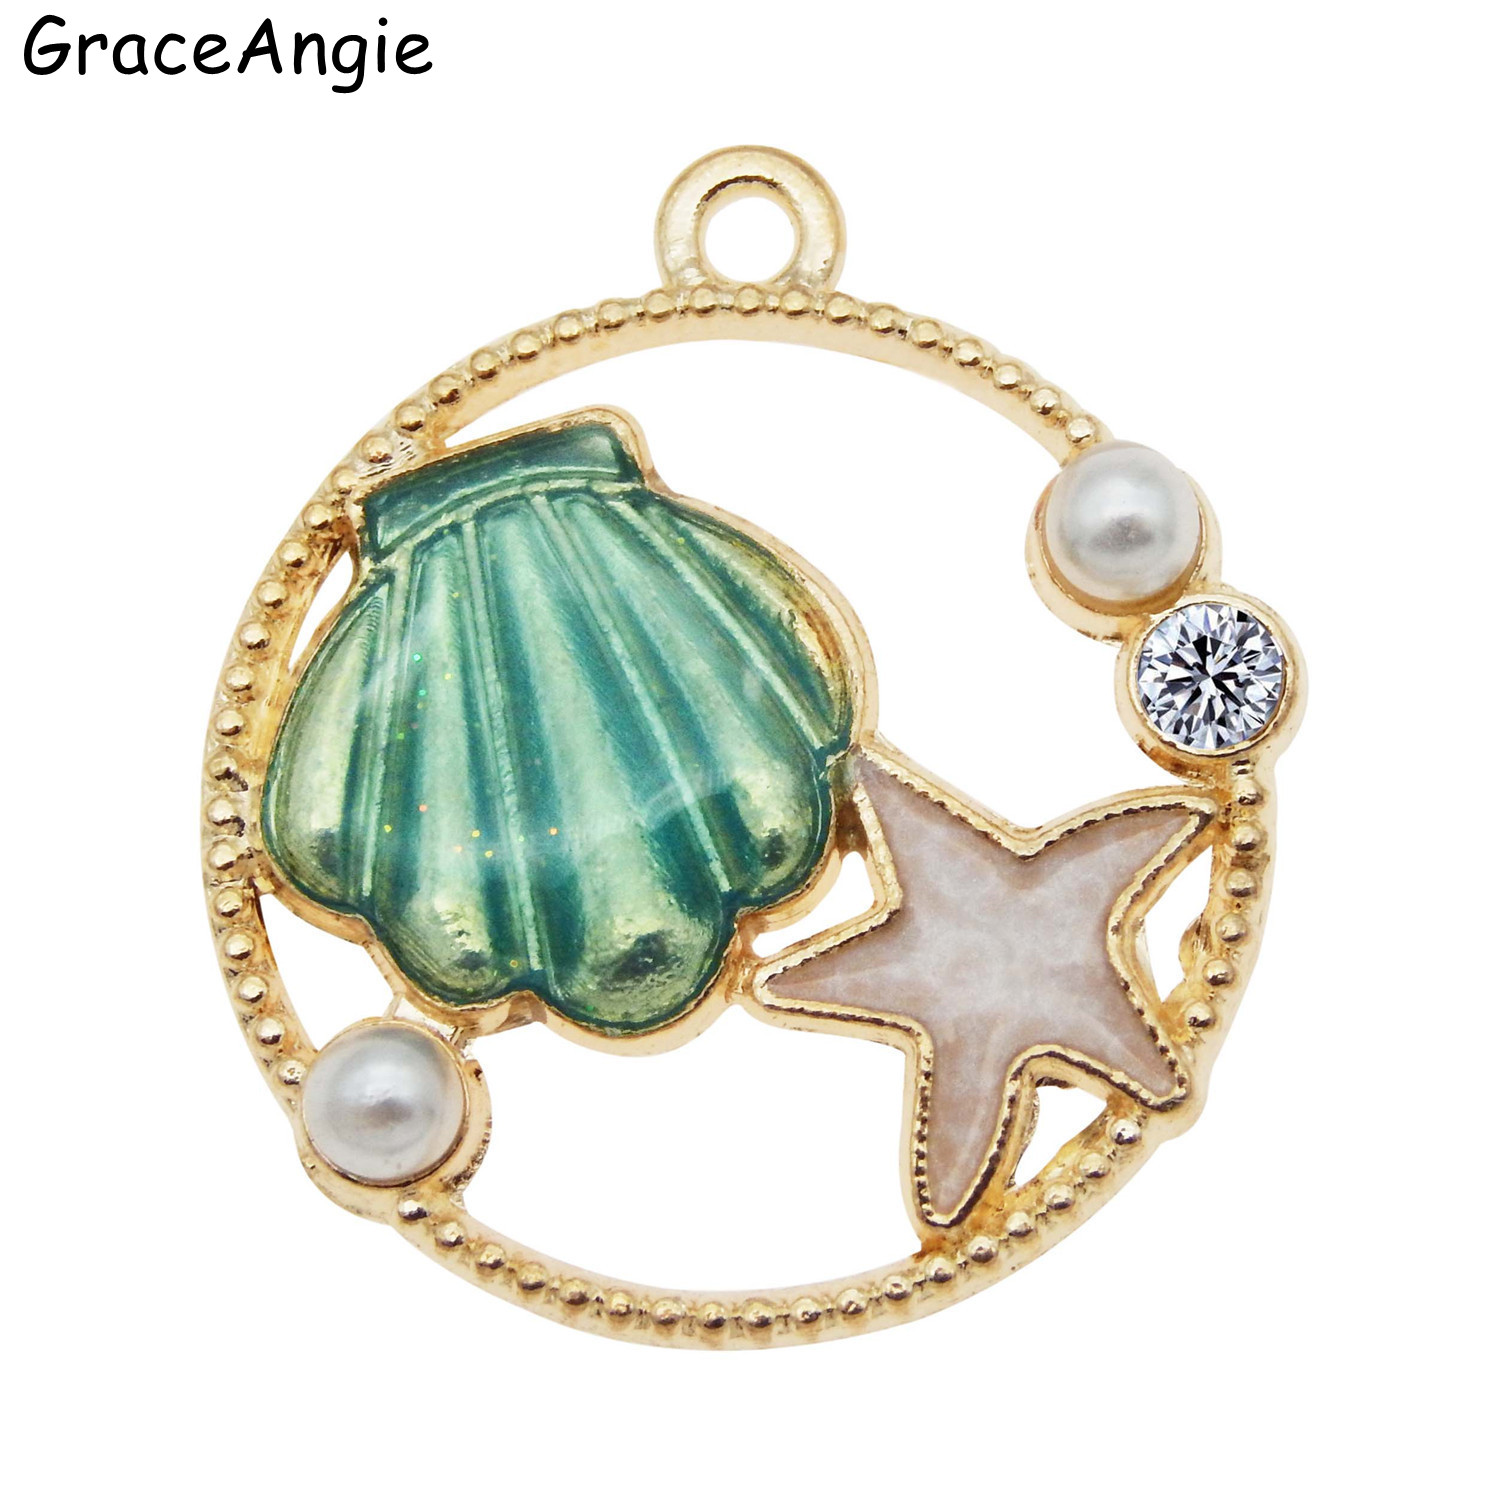 3pcs 28 25mm Couch Shell Pendant For Necklace Bohemia Sea Jewelry Earrings Making With Star Round Pearls Charms in Circle in Charms from Jewelry Accessories